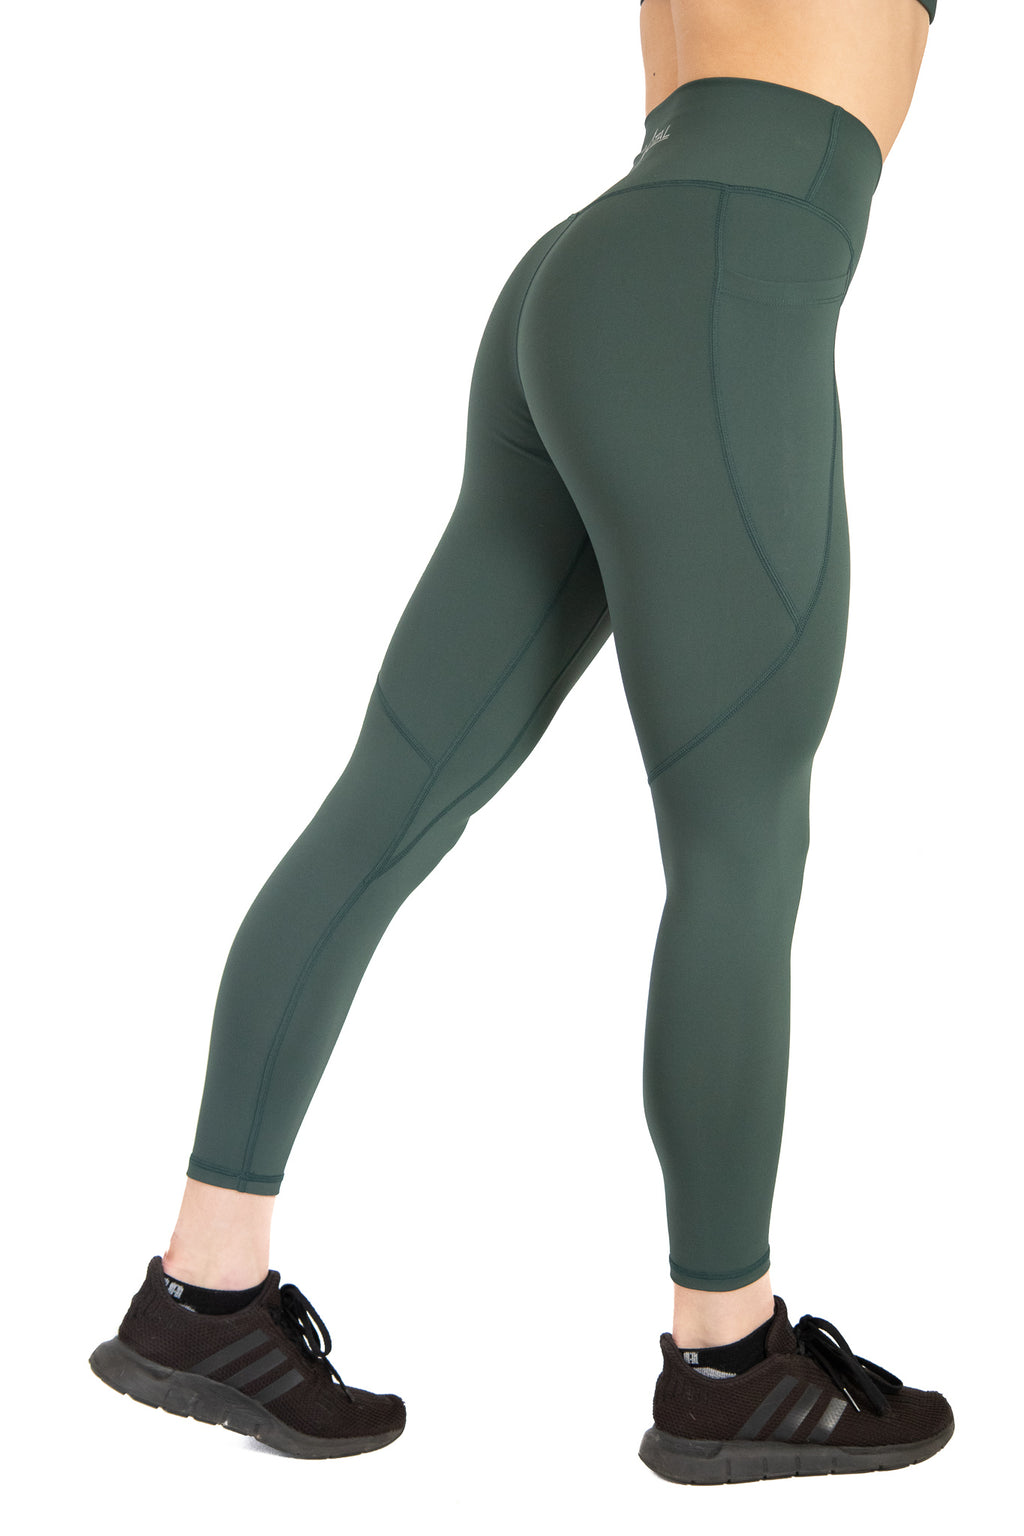 High Waisted Pocket Leggings Athletic Squat Proof Forest Green